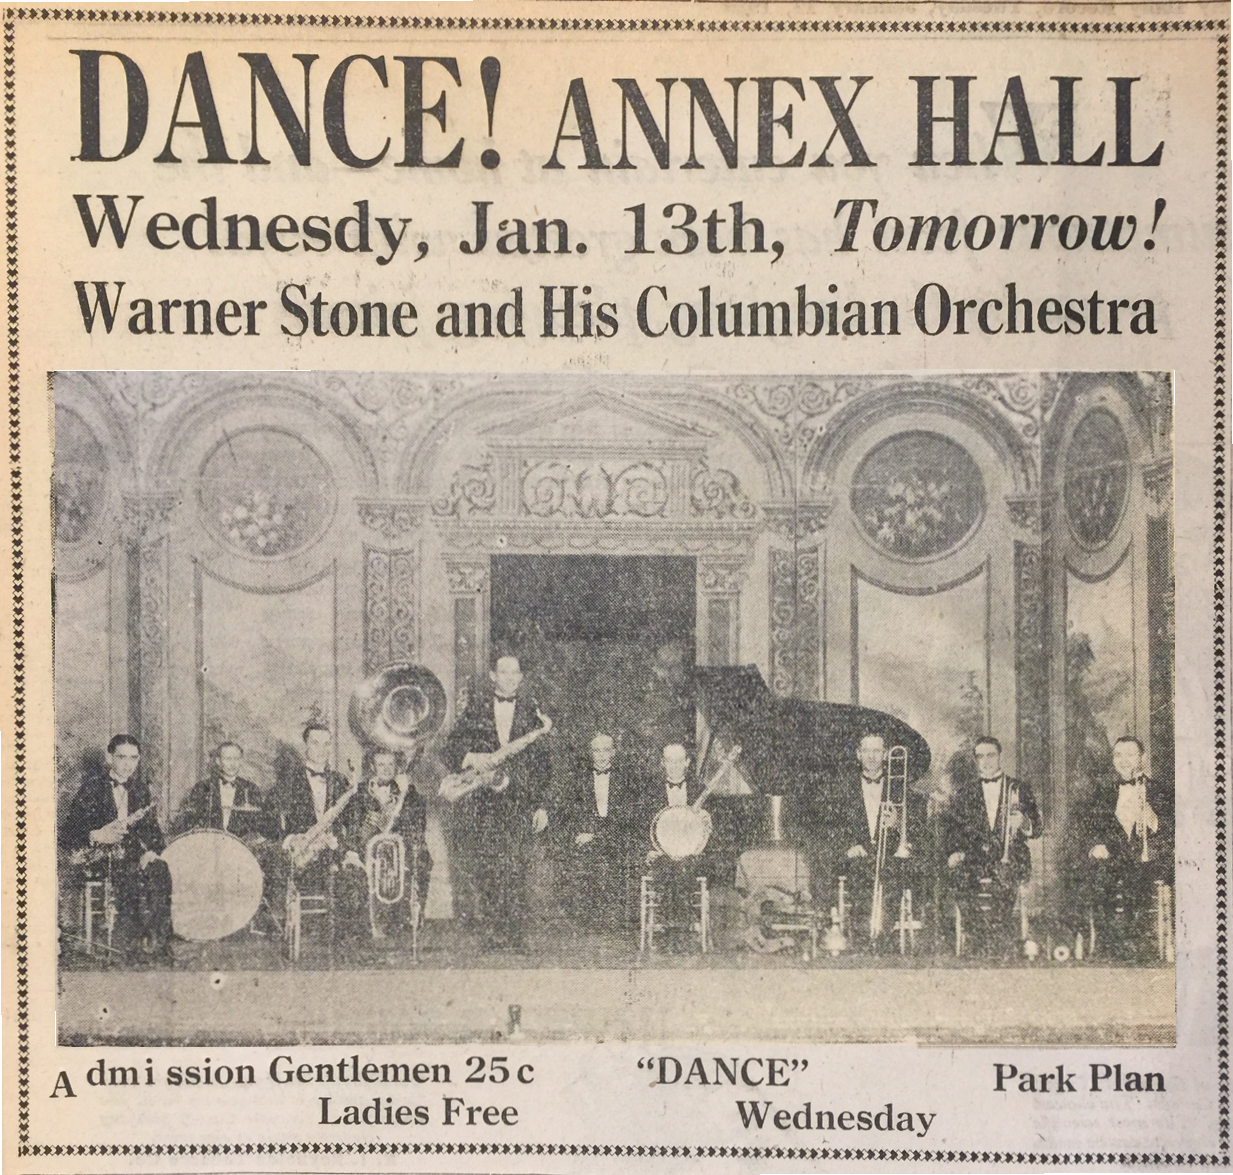 Ad in Cañon City Daily Record, January 12, 1926